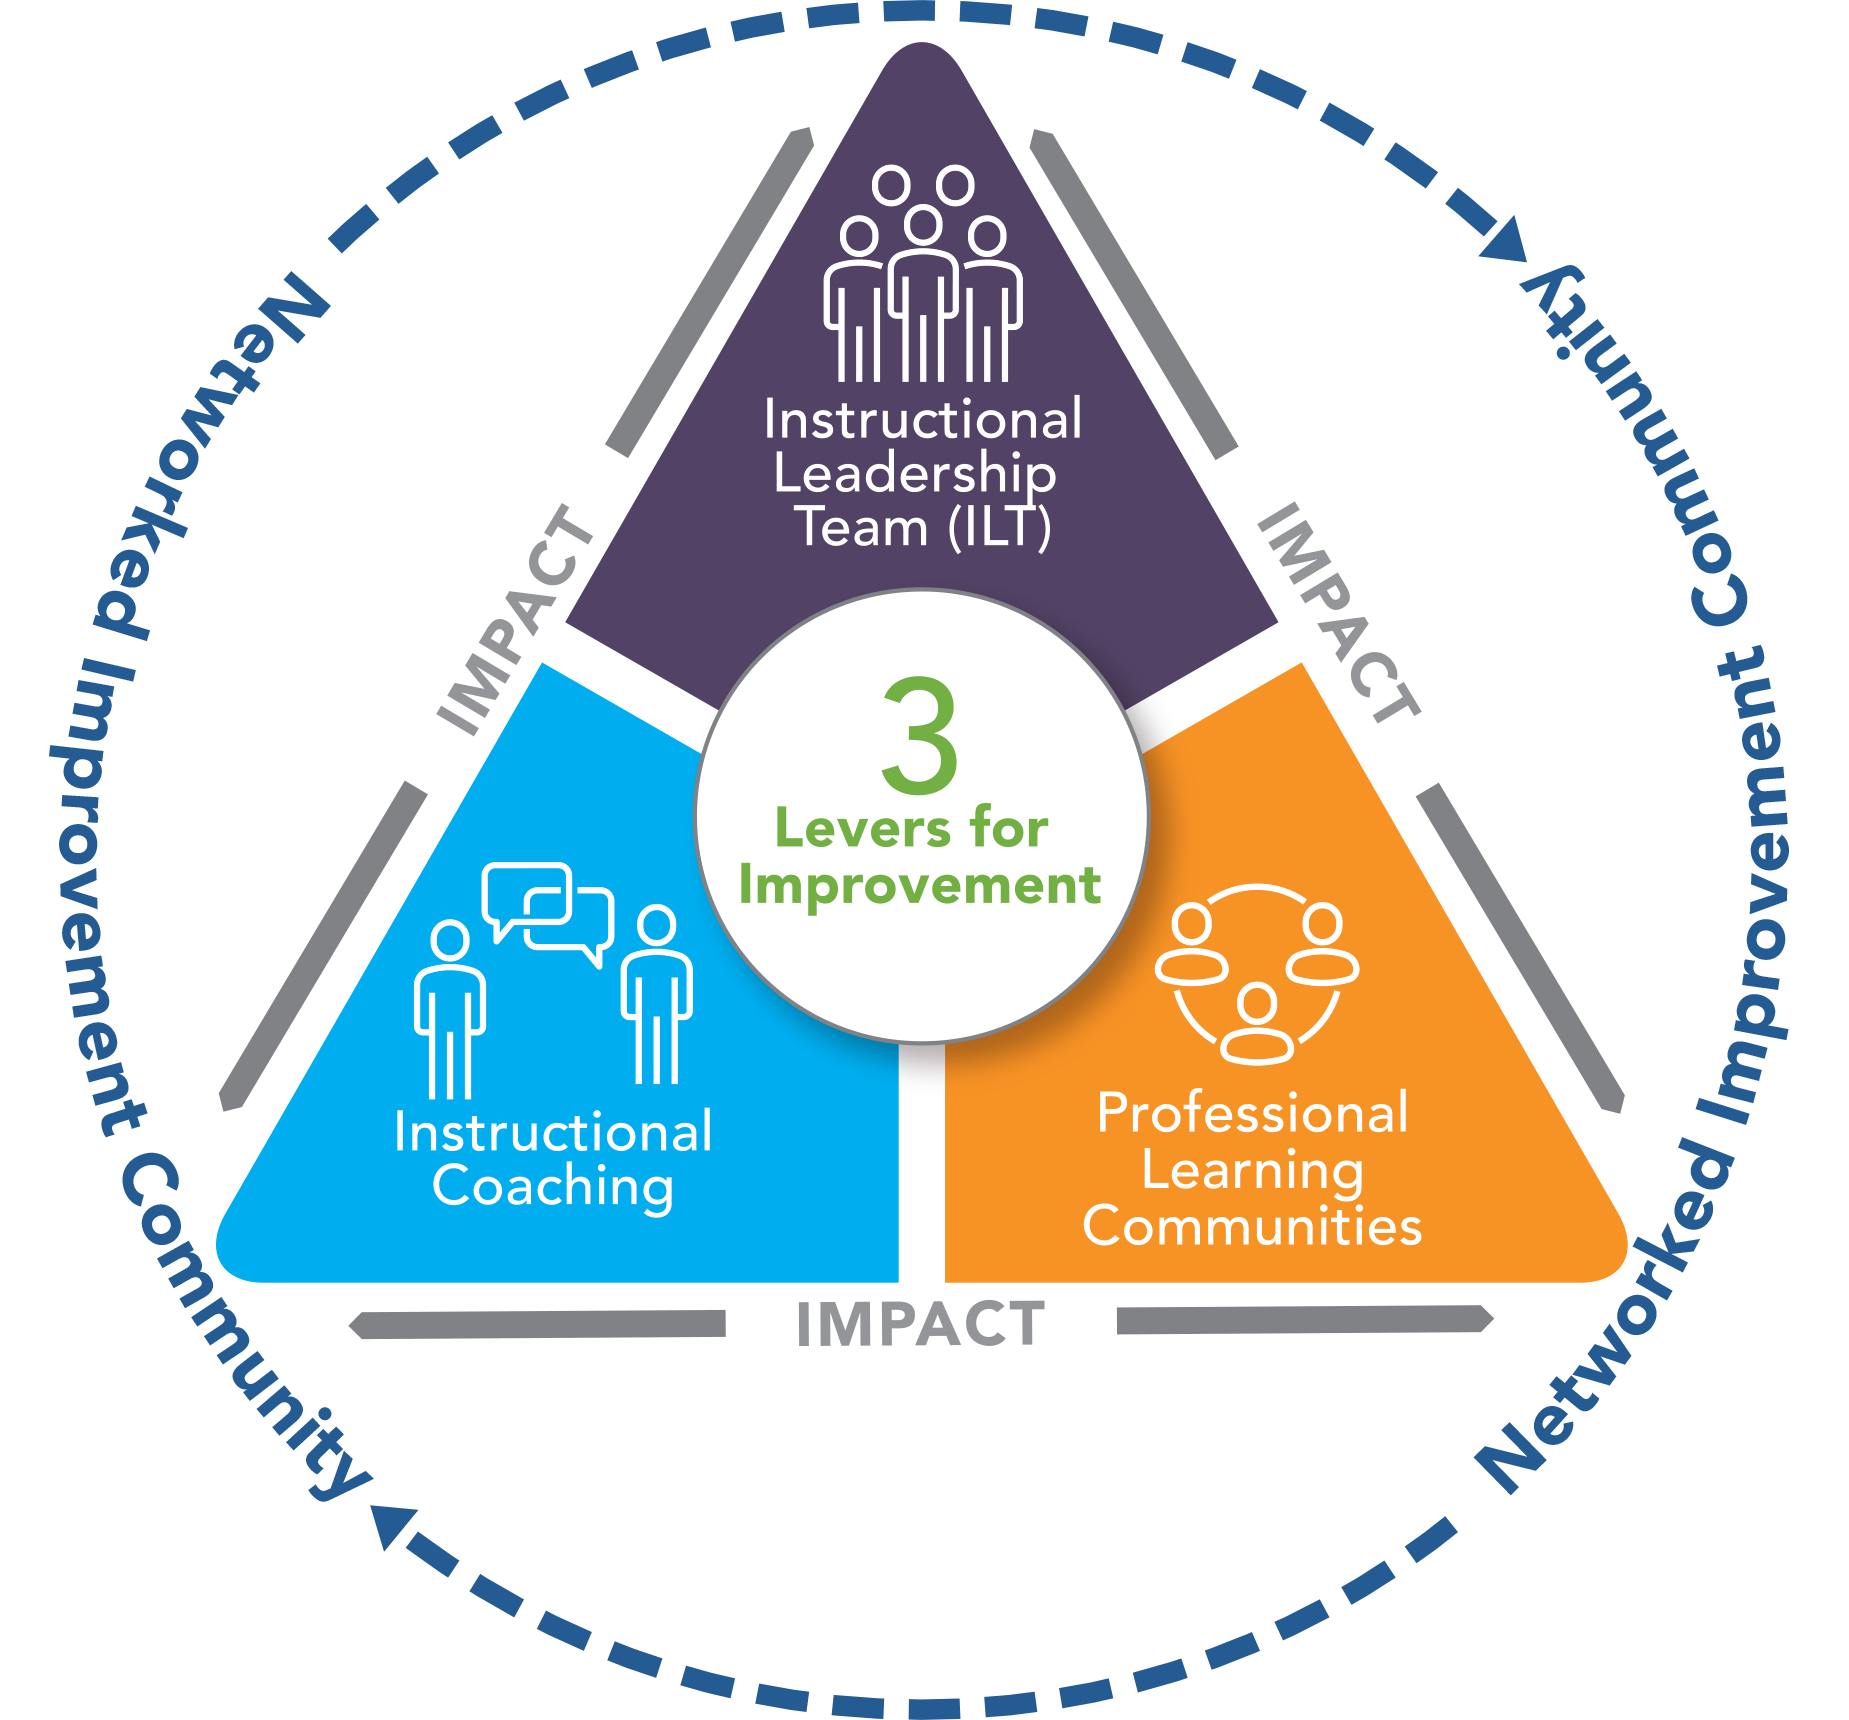 Three levers for school improvement with networked improvement community